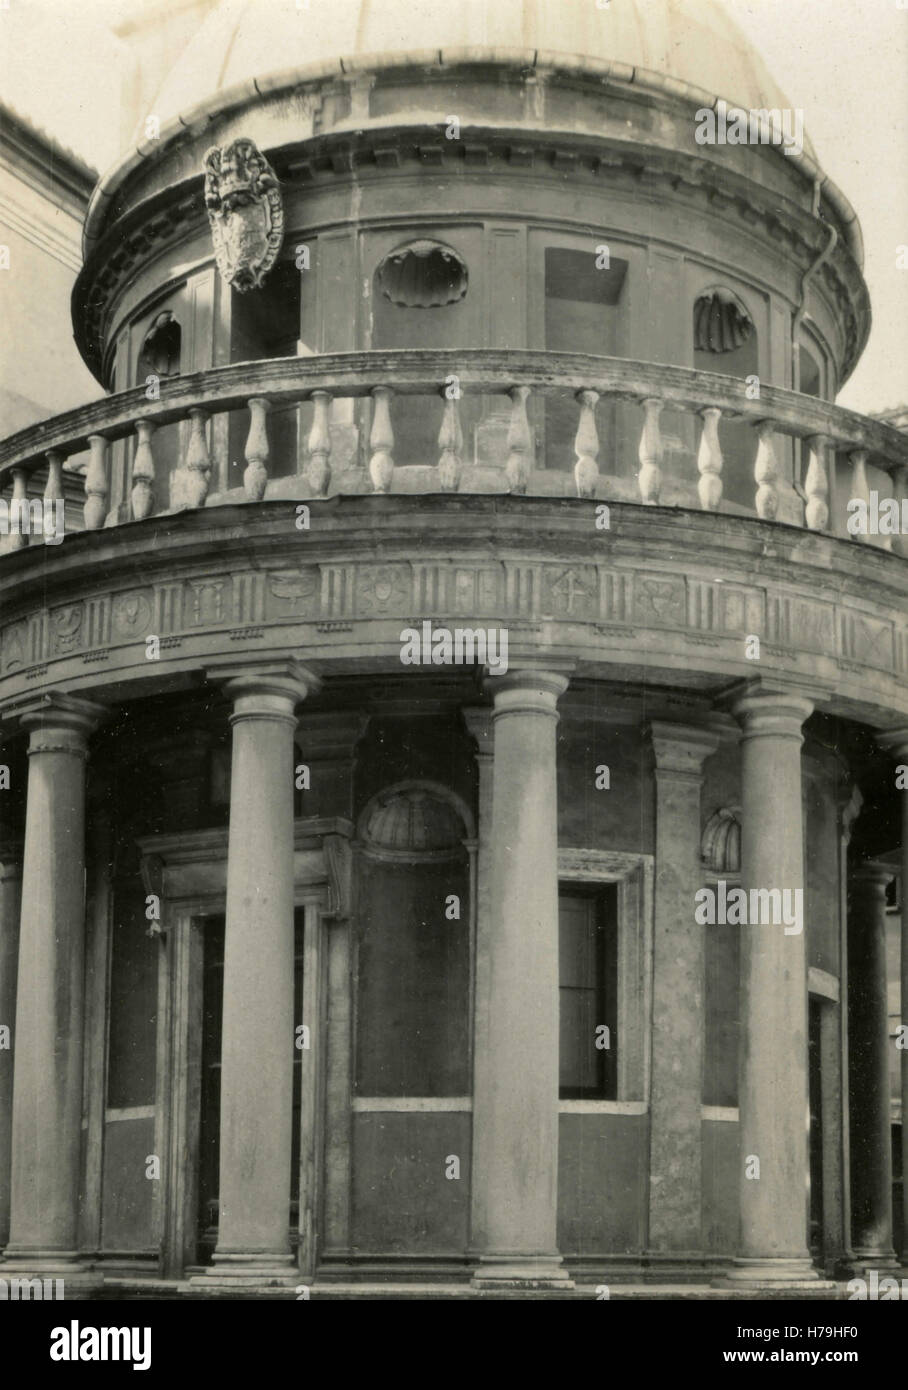 Tempietto in St. Peter in Montorio, Rome, Italy - Stock Image